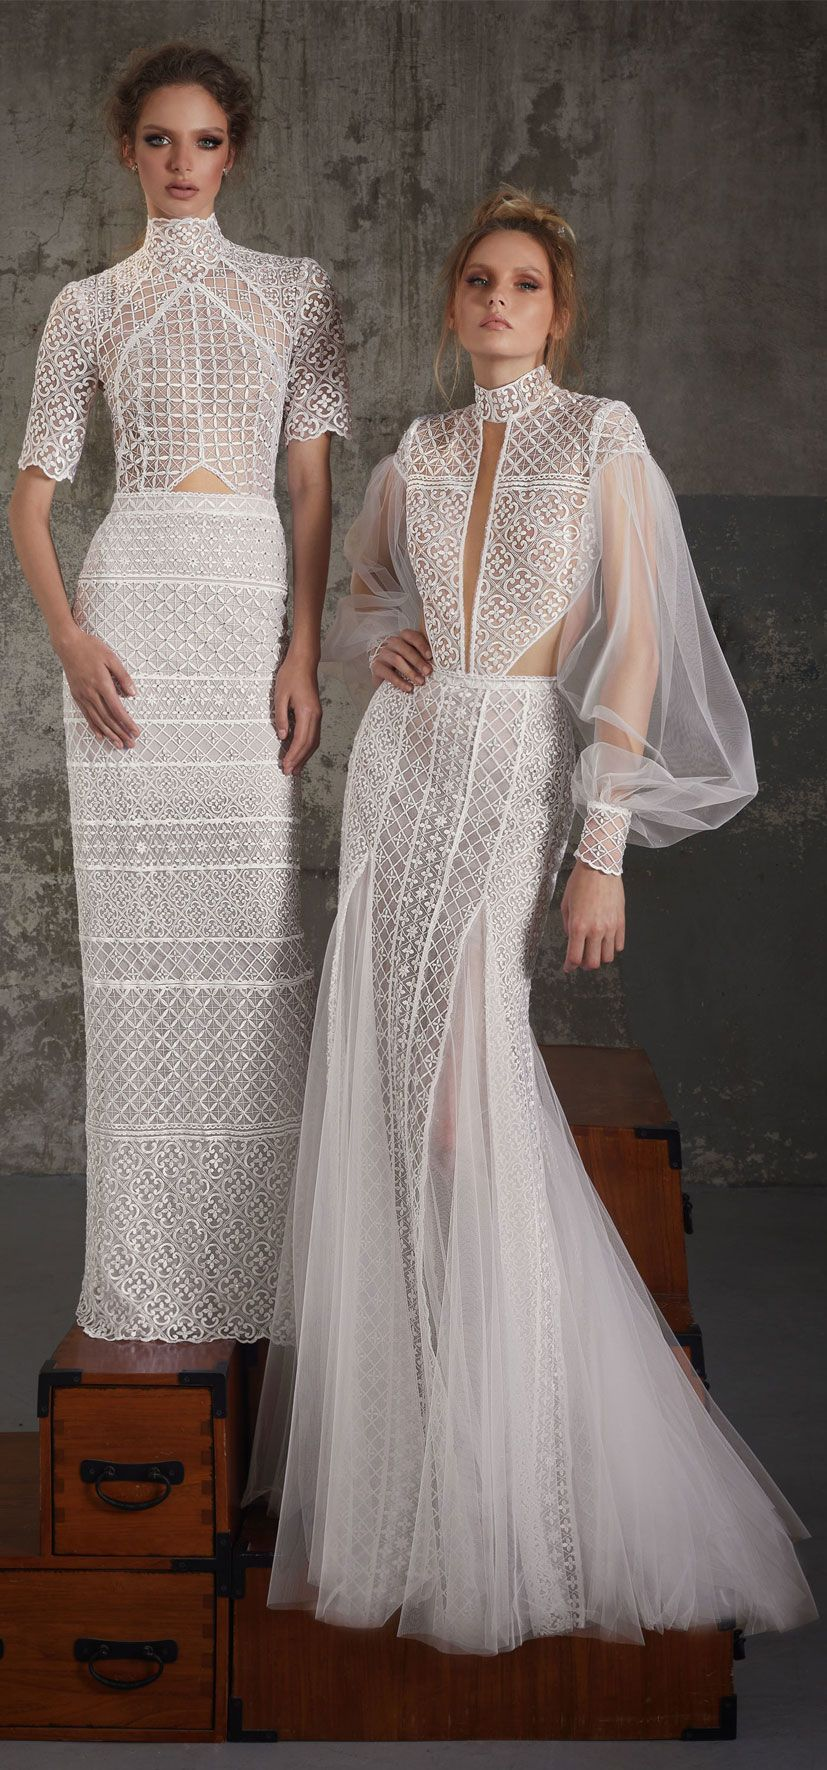 Boho wedding dress with sleeves  Lior Charchy Fall  Wedding Dresses  Wedding Dresses  Pinterest